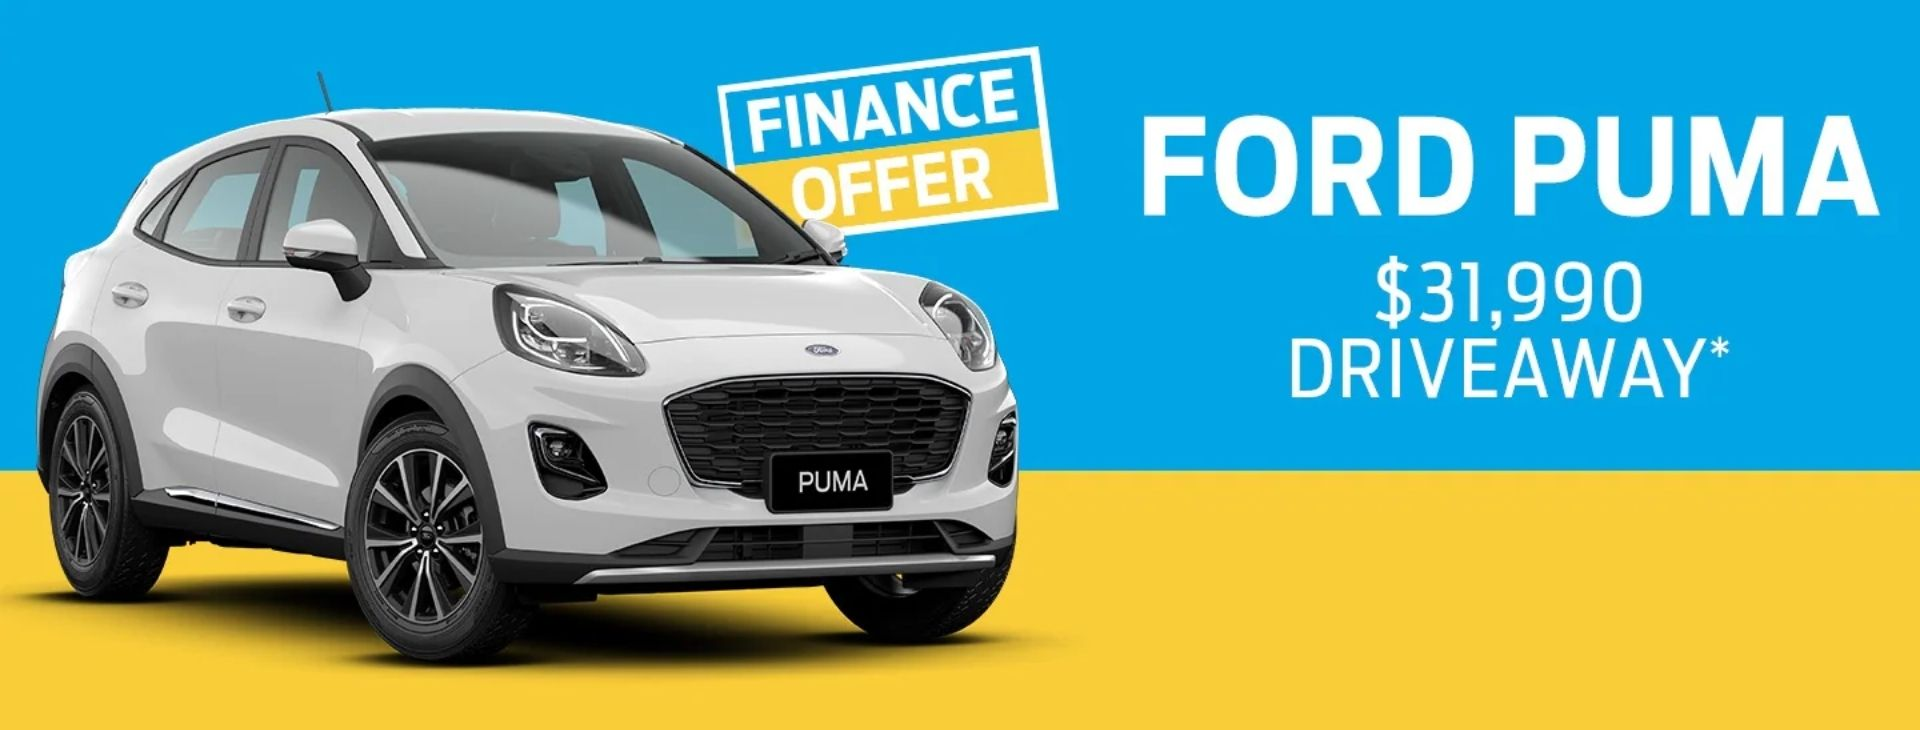 Ford Puma Finance Offer